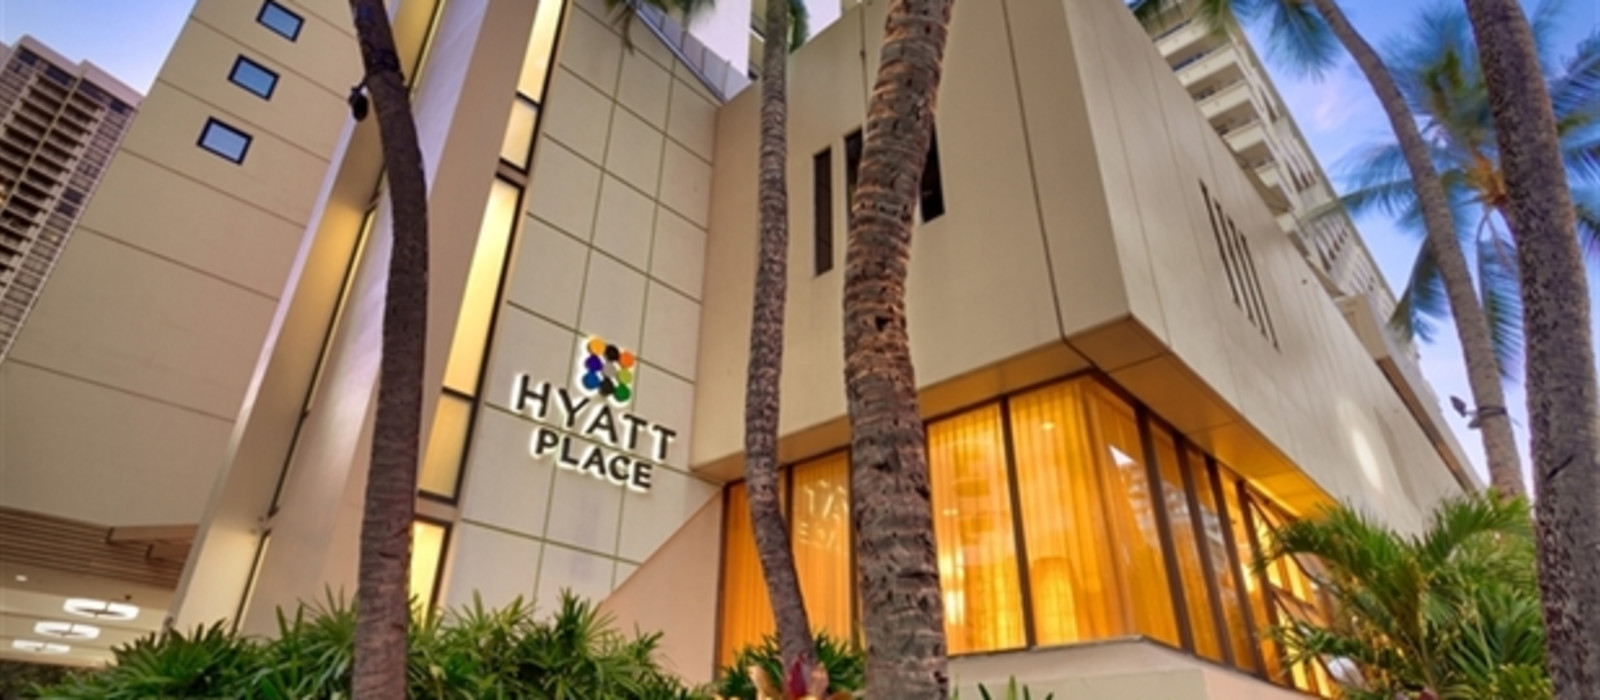 Hotel Hyatt Place Waikiki Hawaii